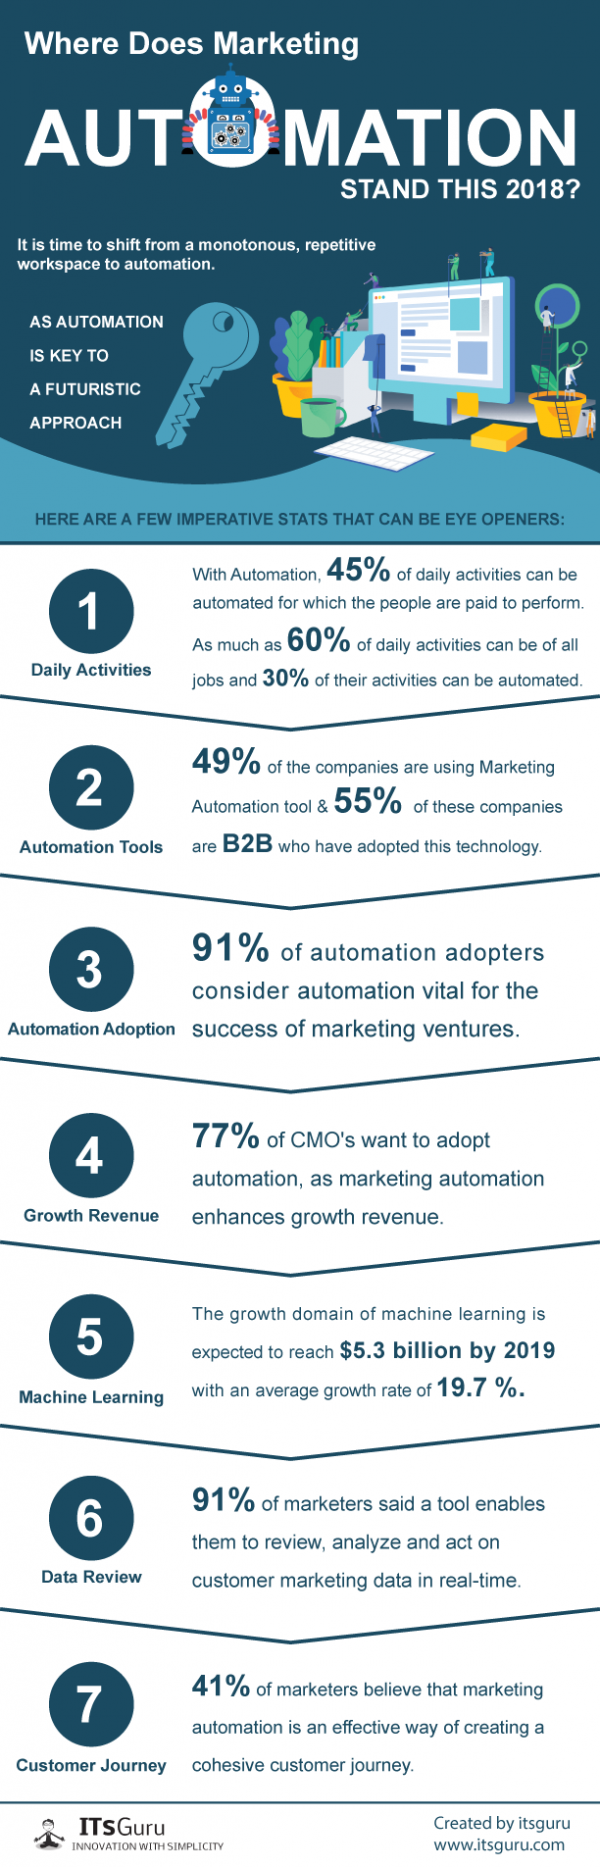 Marketing-Automation-Stand-Infographic